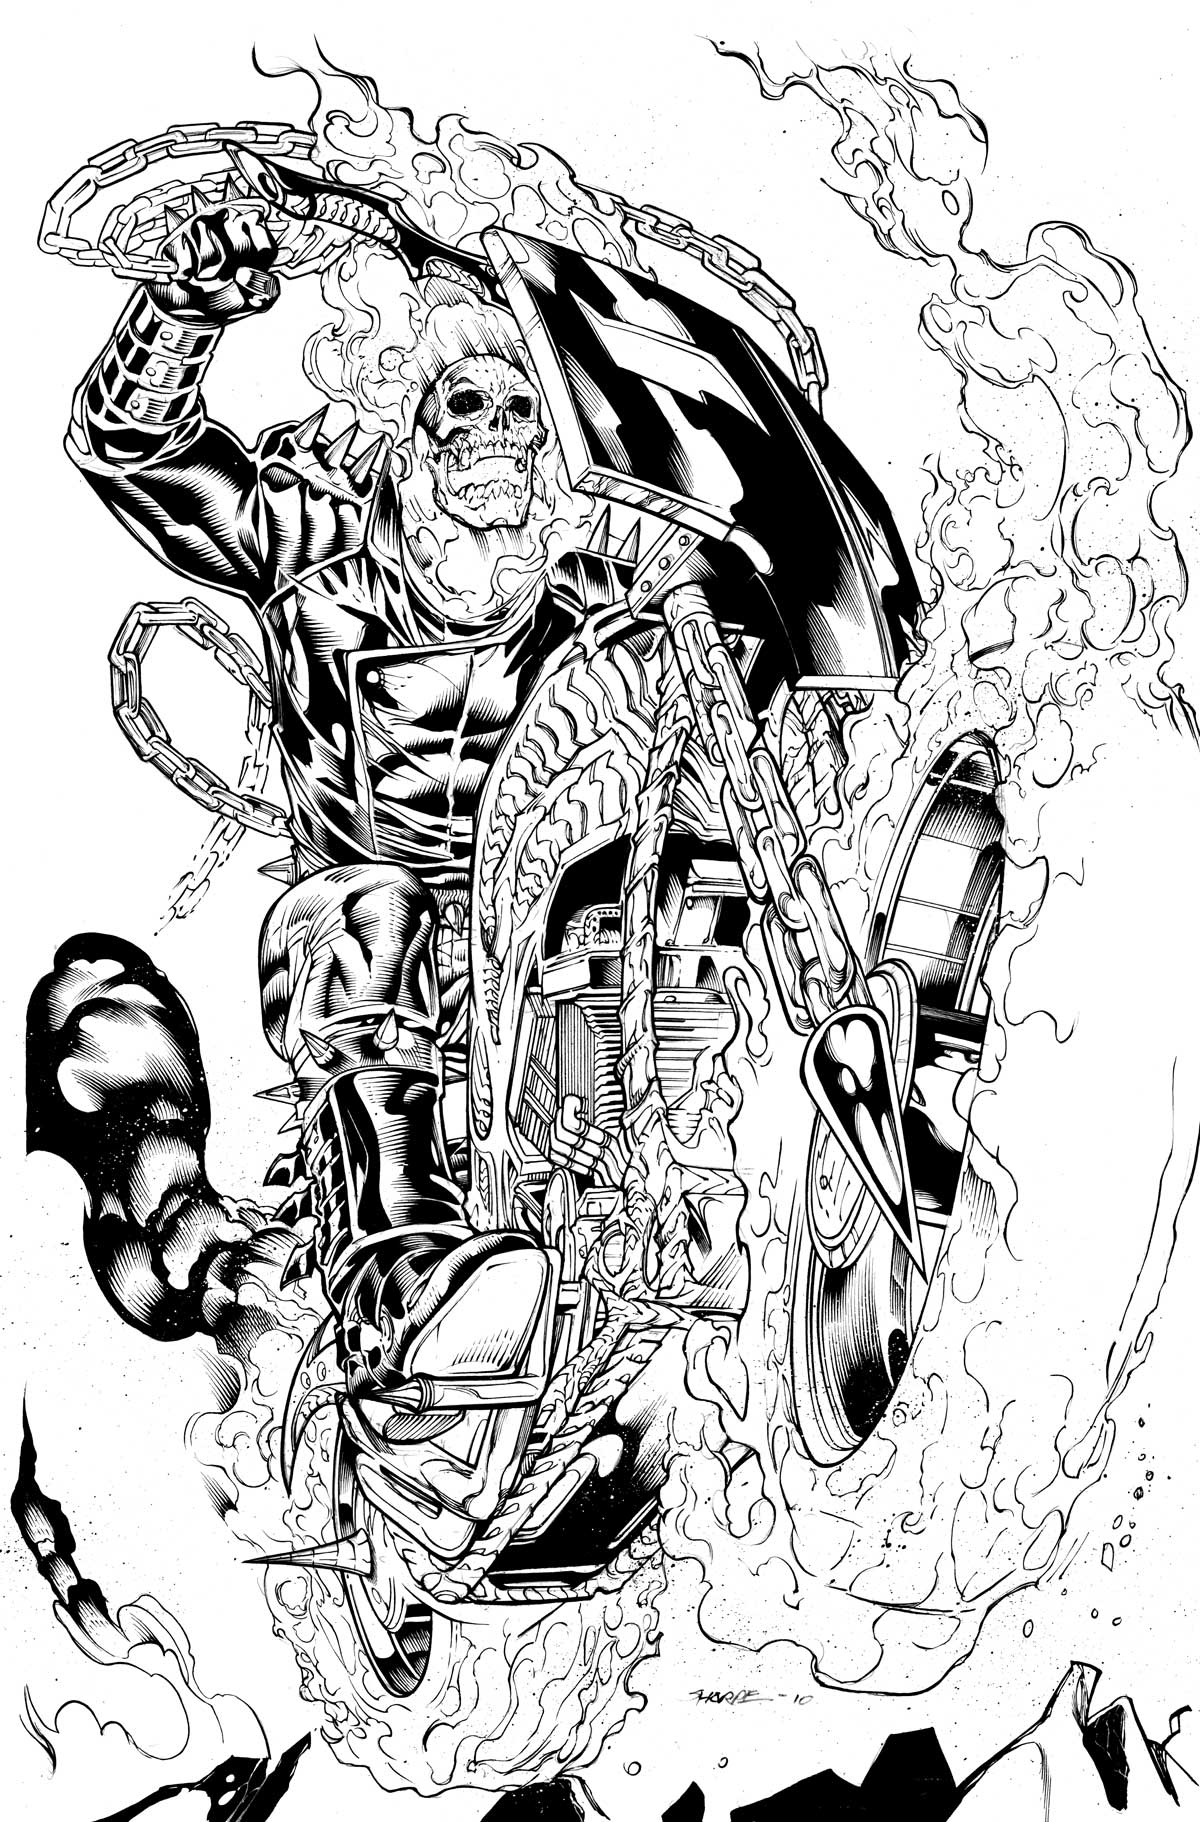 ghost rider coloring sheets ghost rider coloring pages coloring pages to download rider coloring ghost sheets